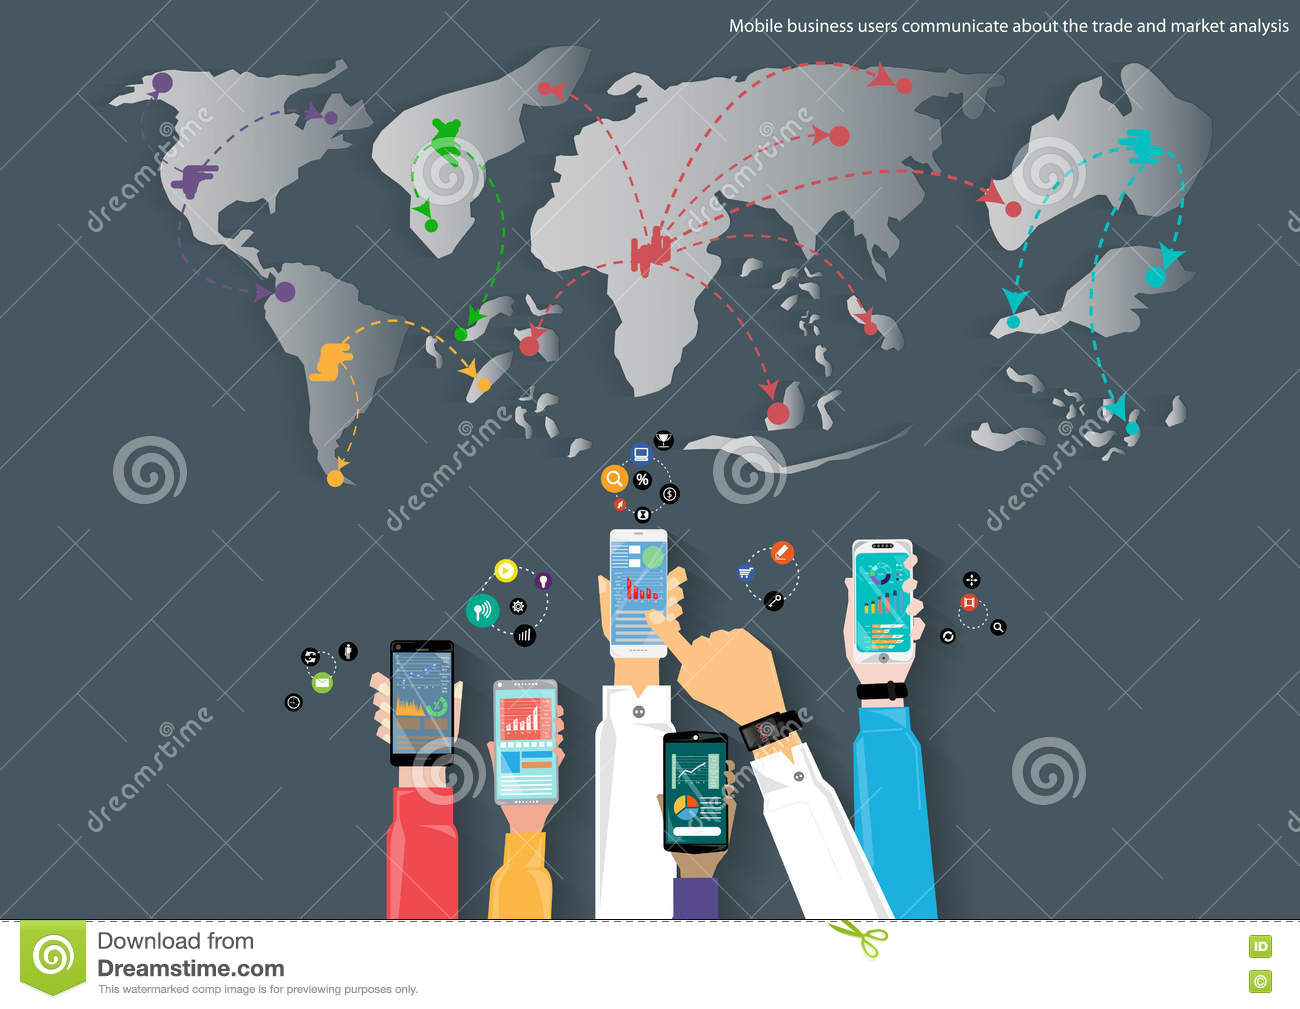 Vector mobile and travel the world map of business communication vector mobile and travel the world map of business communication trading marketing and global business icon flat design gumiabroncs Choice Image